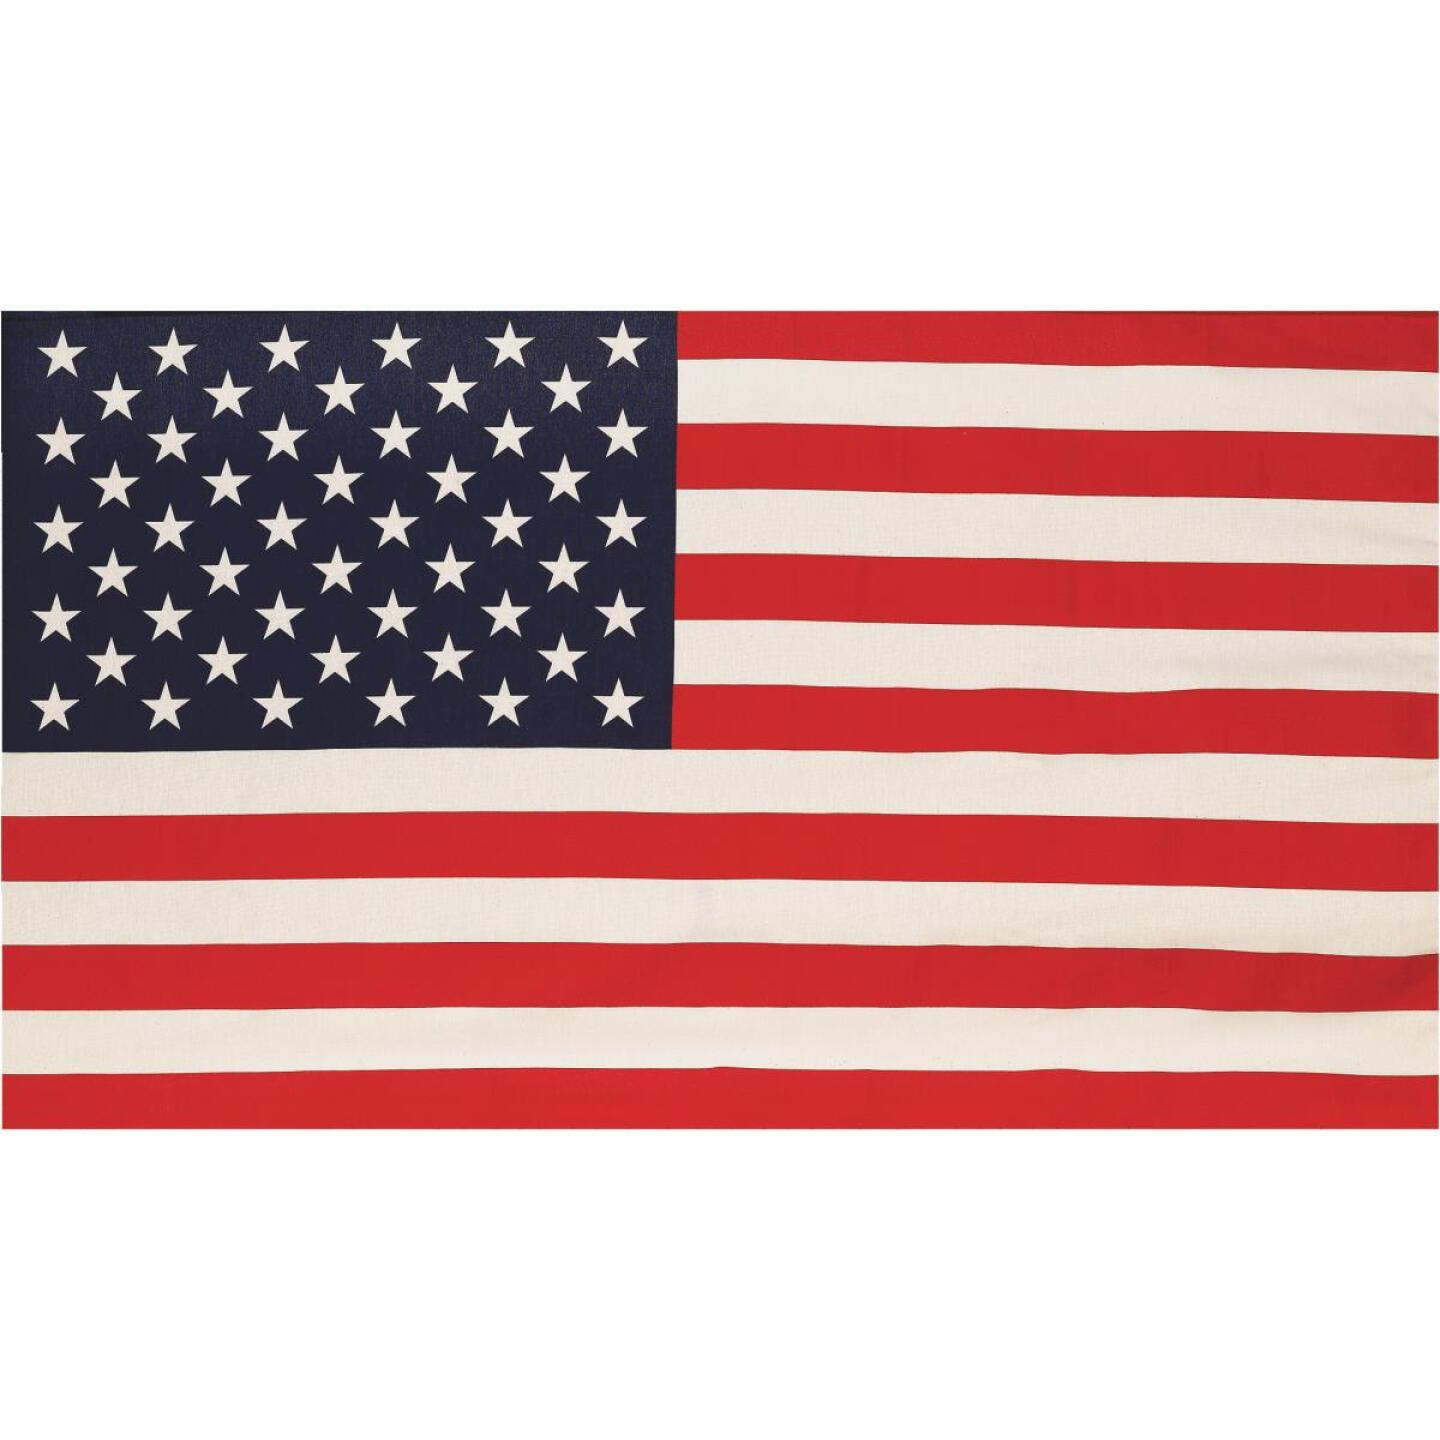 Valley Forge 2.5 Ft. x 4 Ft. Polycotton Banner American Flag Image 1